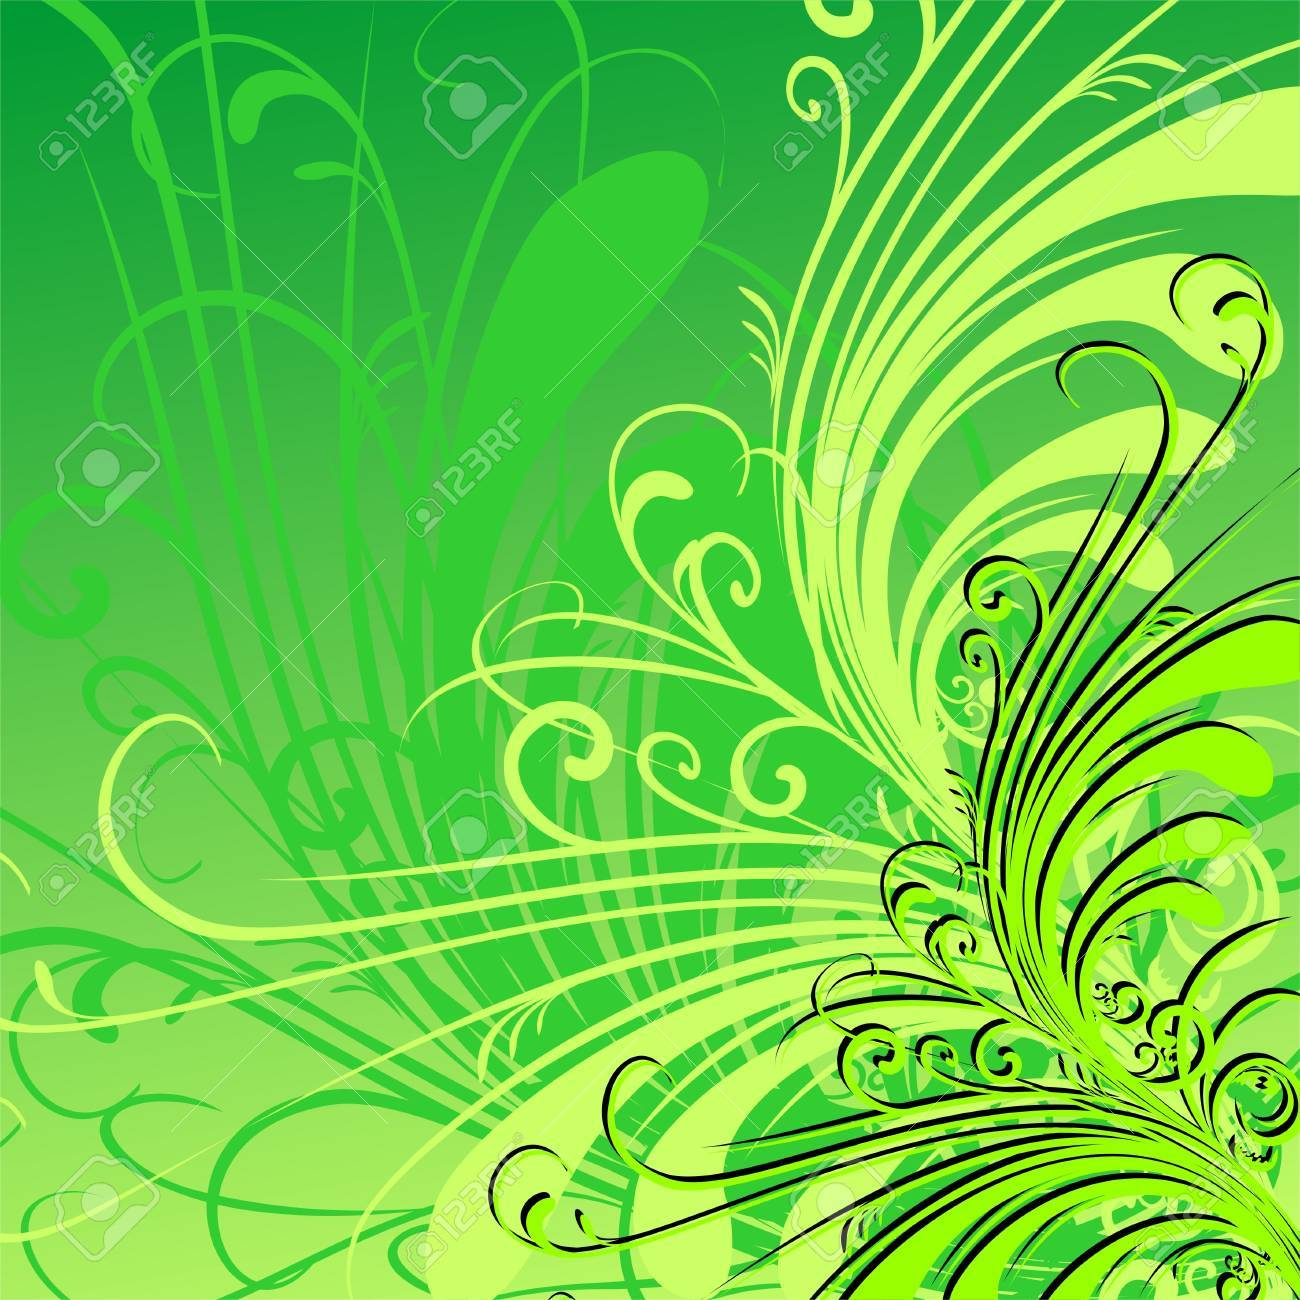 Green floral background - 10748472